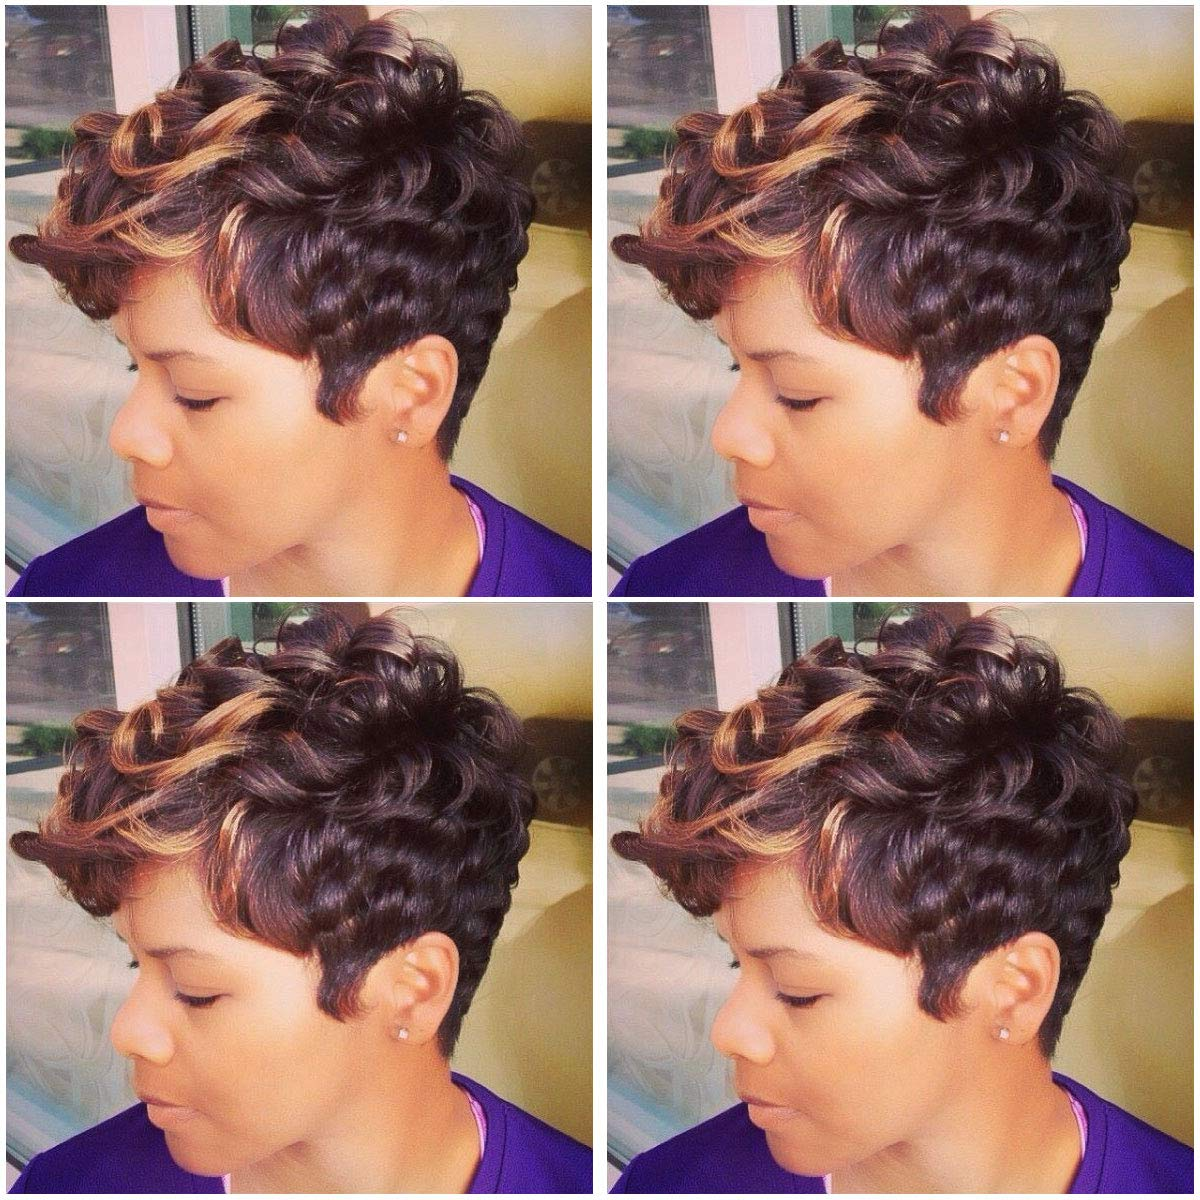 Beisd Short Ombre Blonde Brown Wig Short Curly Synthetic Wigs For Black Women Afro Curly Wigs For African American Women Black Women Hairstyles